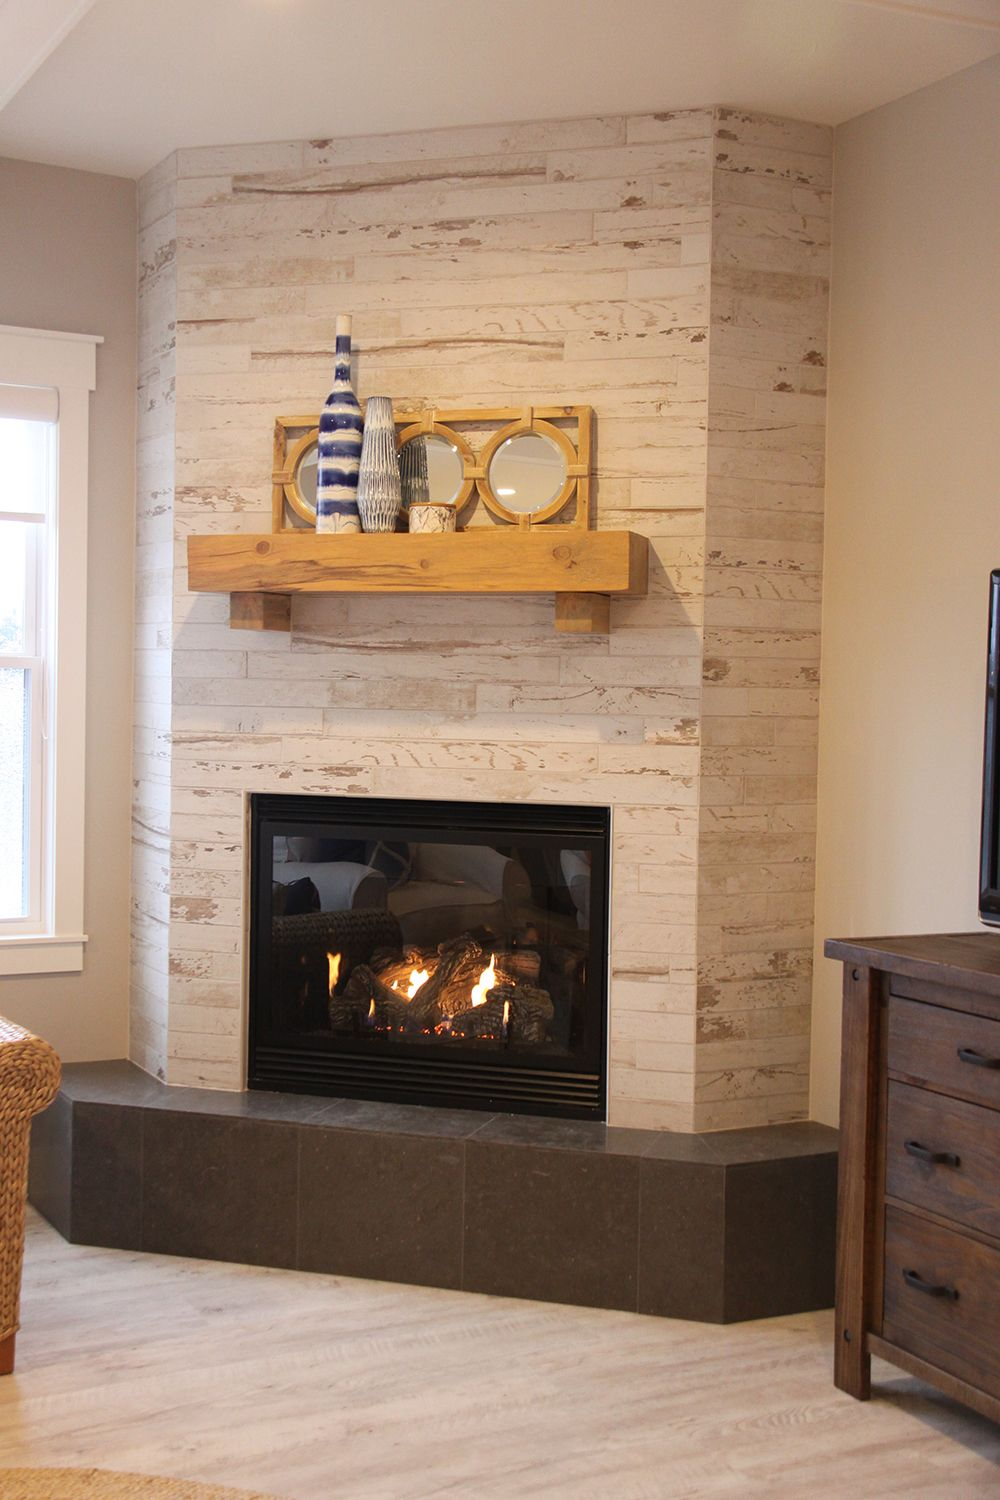 Wood Look Ceramic Tile Corner Fireplace | dundee decor. | Pinterest ...